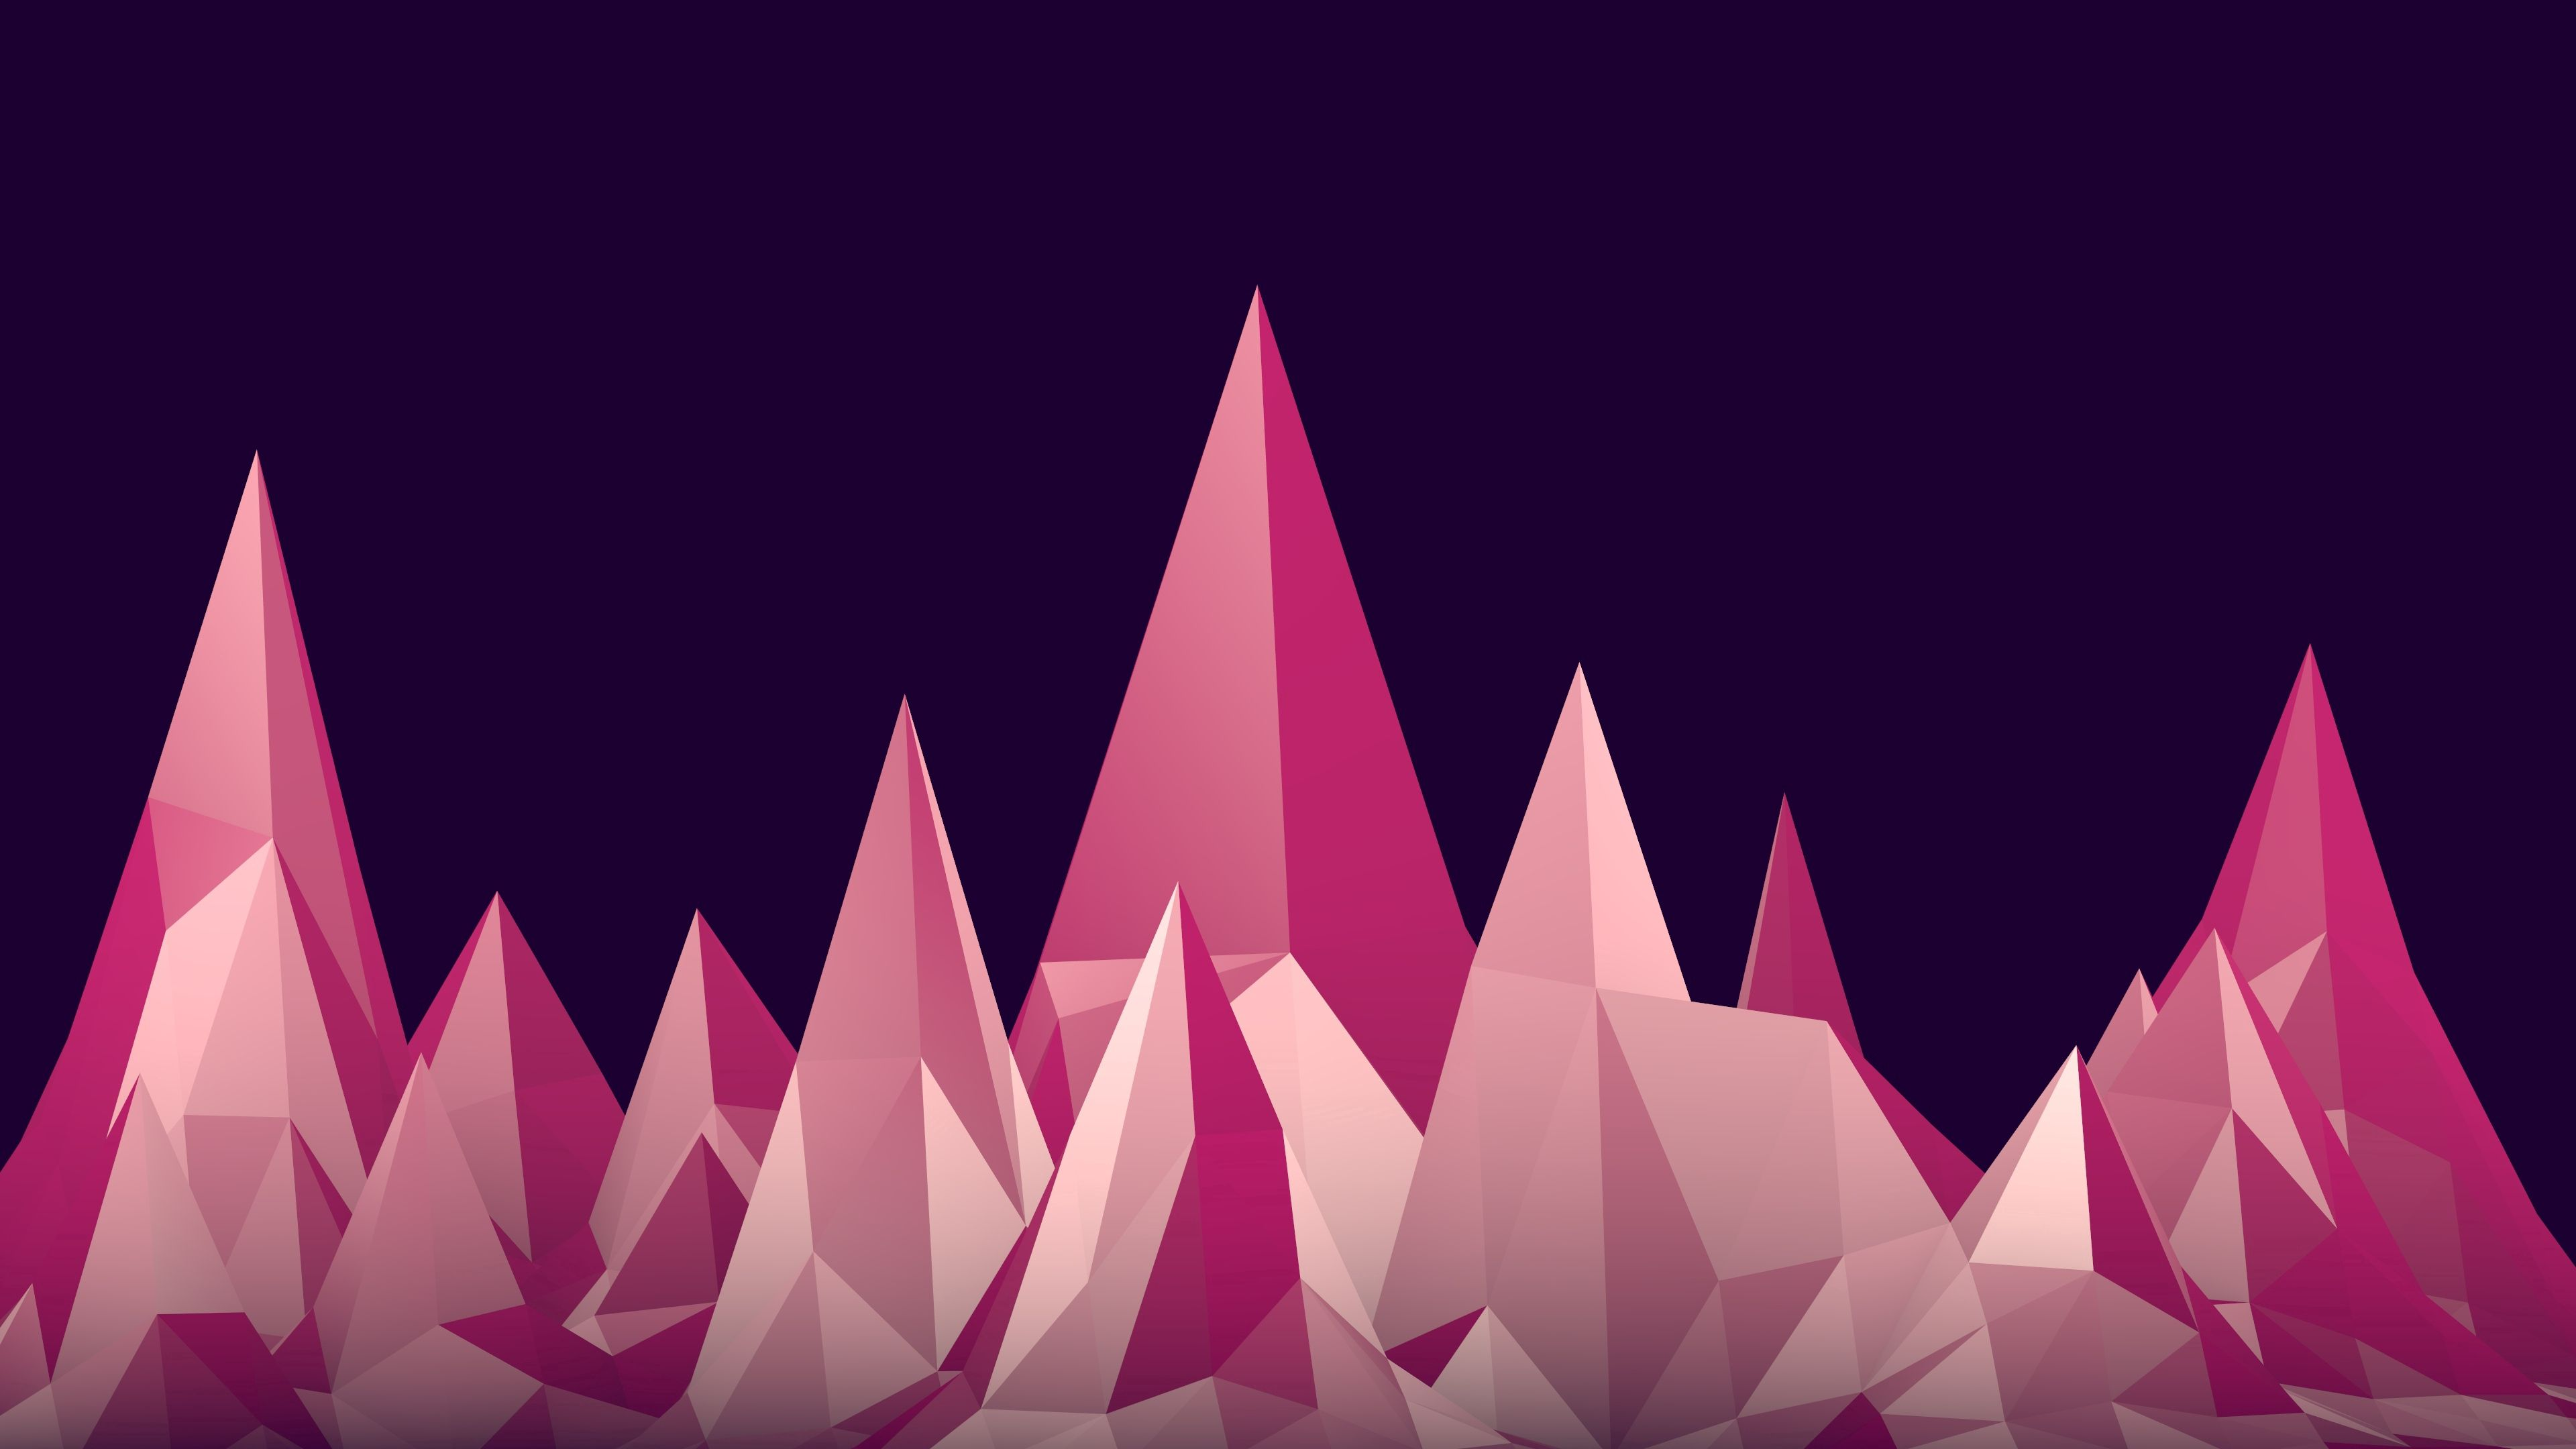 136496 download wallpaper Vector, Minimalism, Digital Art, Graphics, Low Poly, Low-Polygonal screensavers and pictures for free